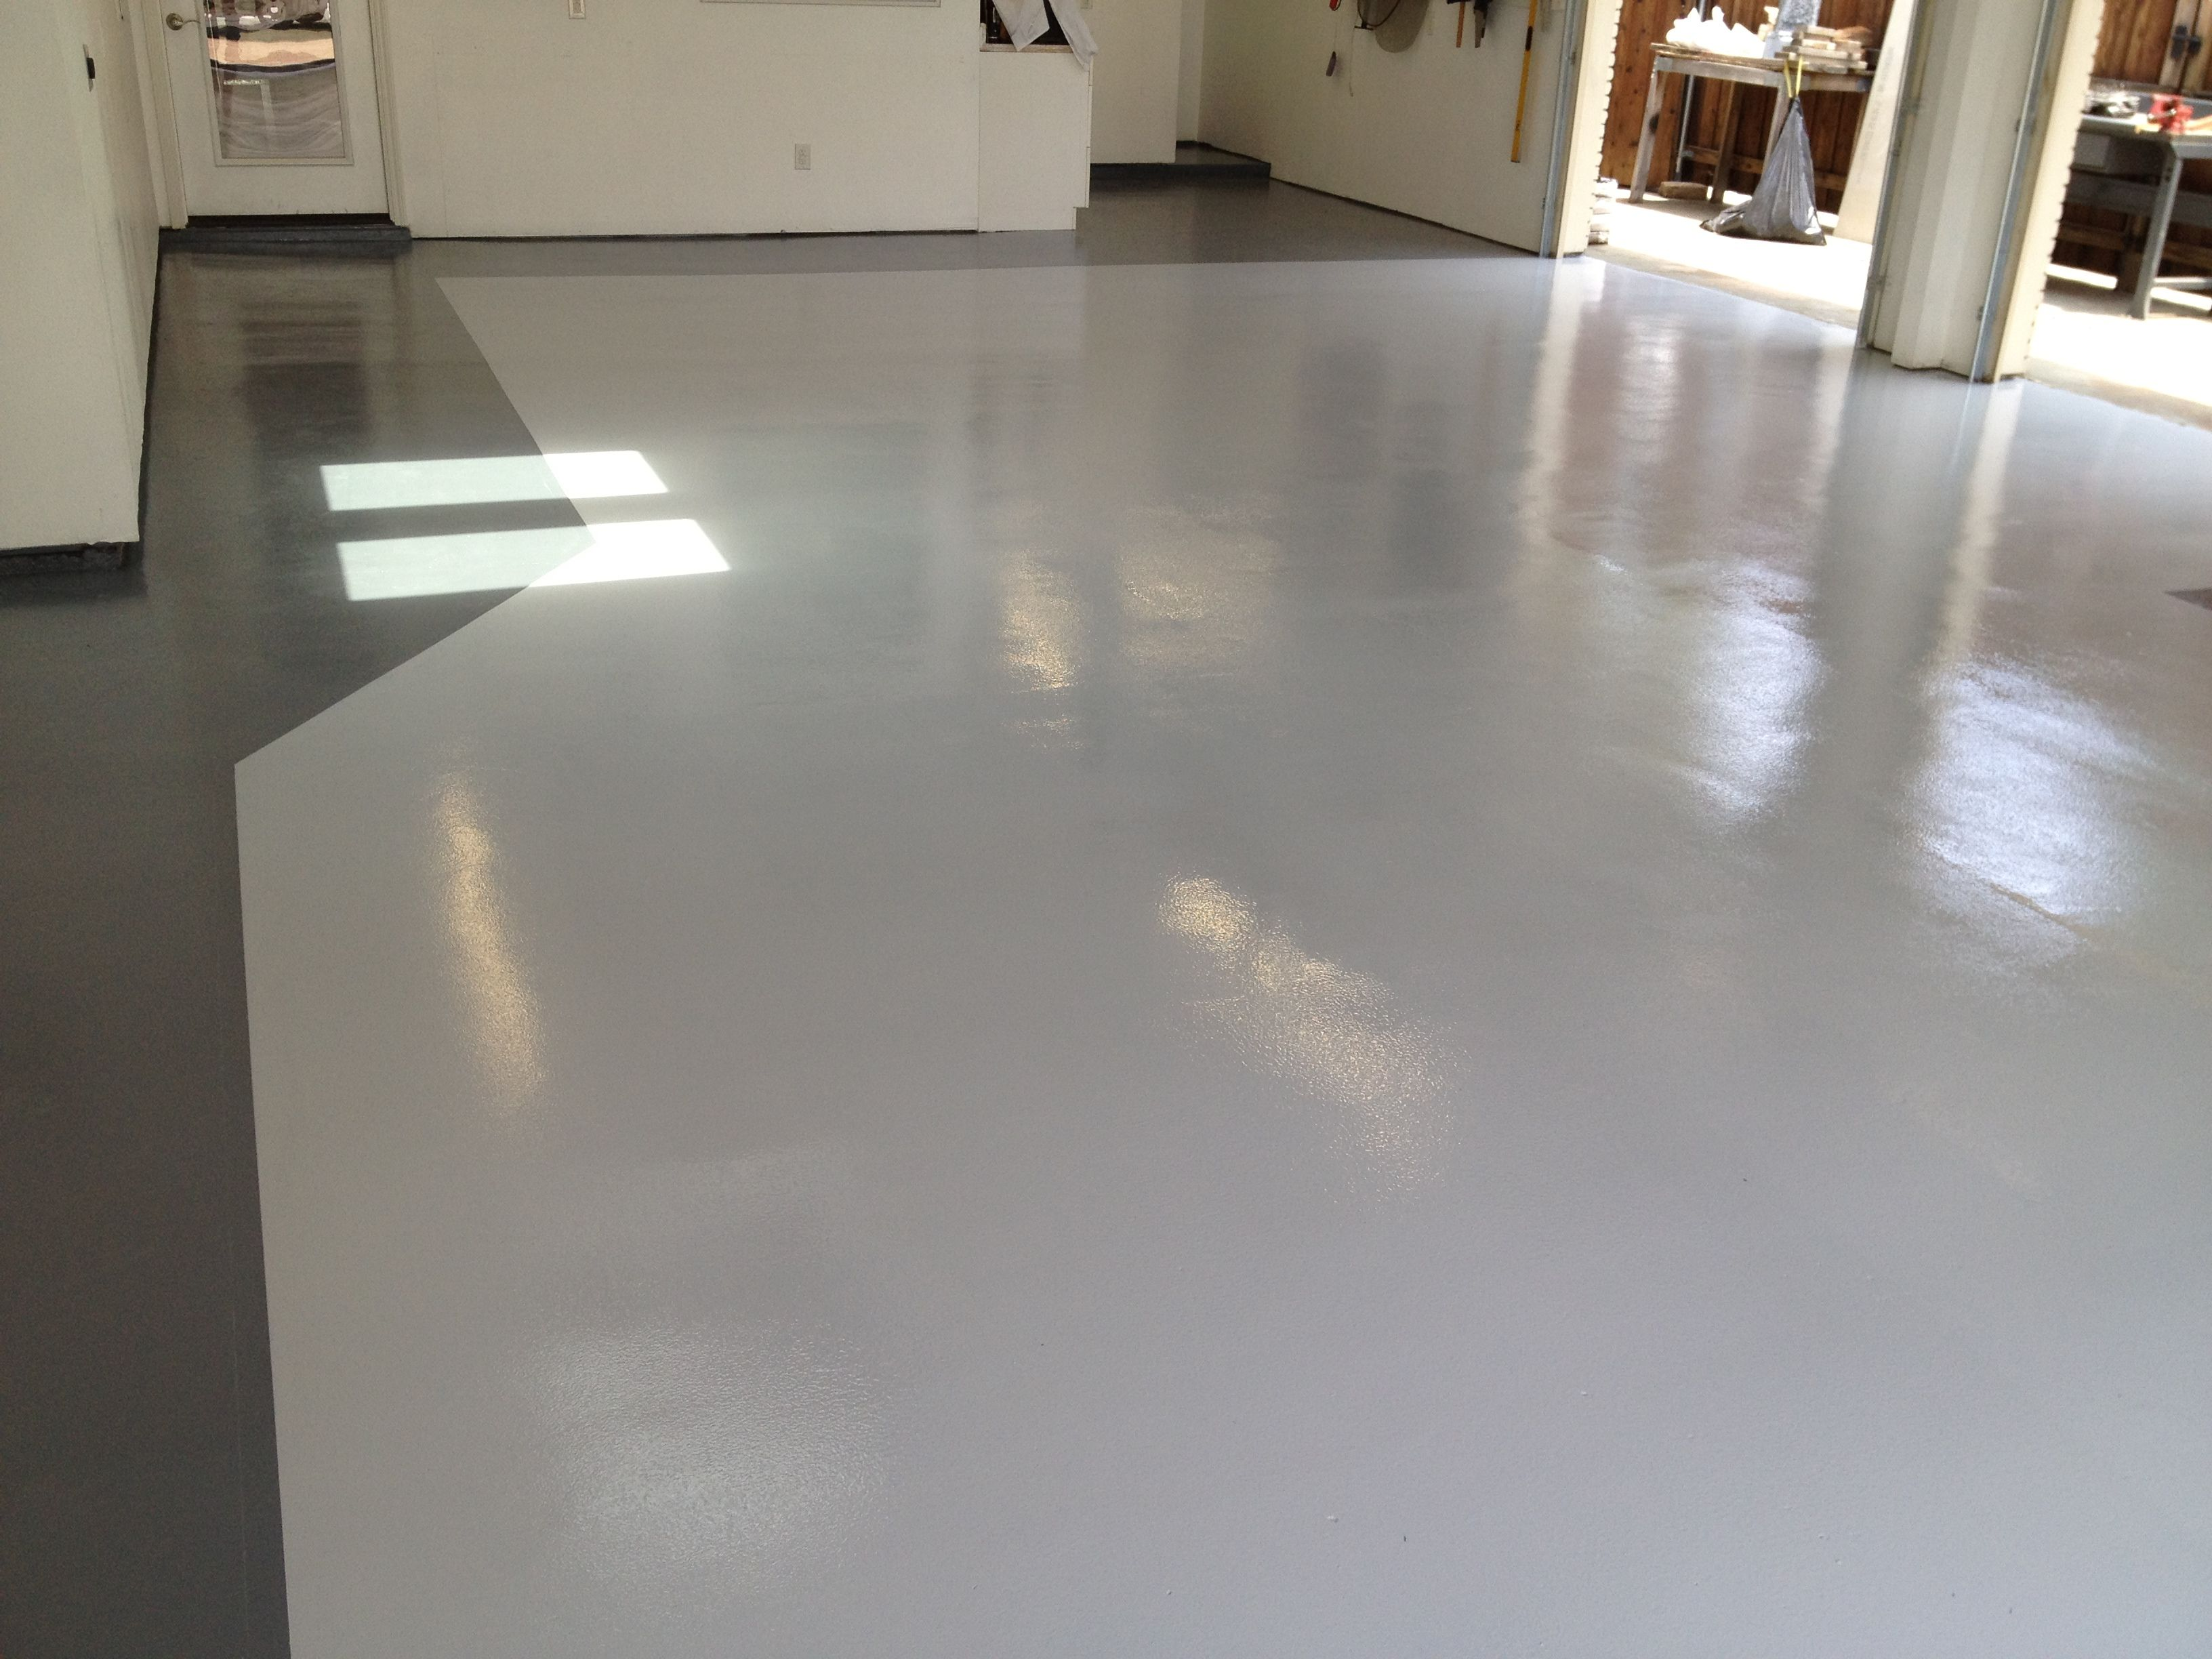 2 Tone Gray Color Floor Base Is A Gray Colored Epoxy